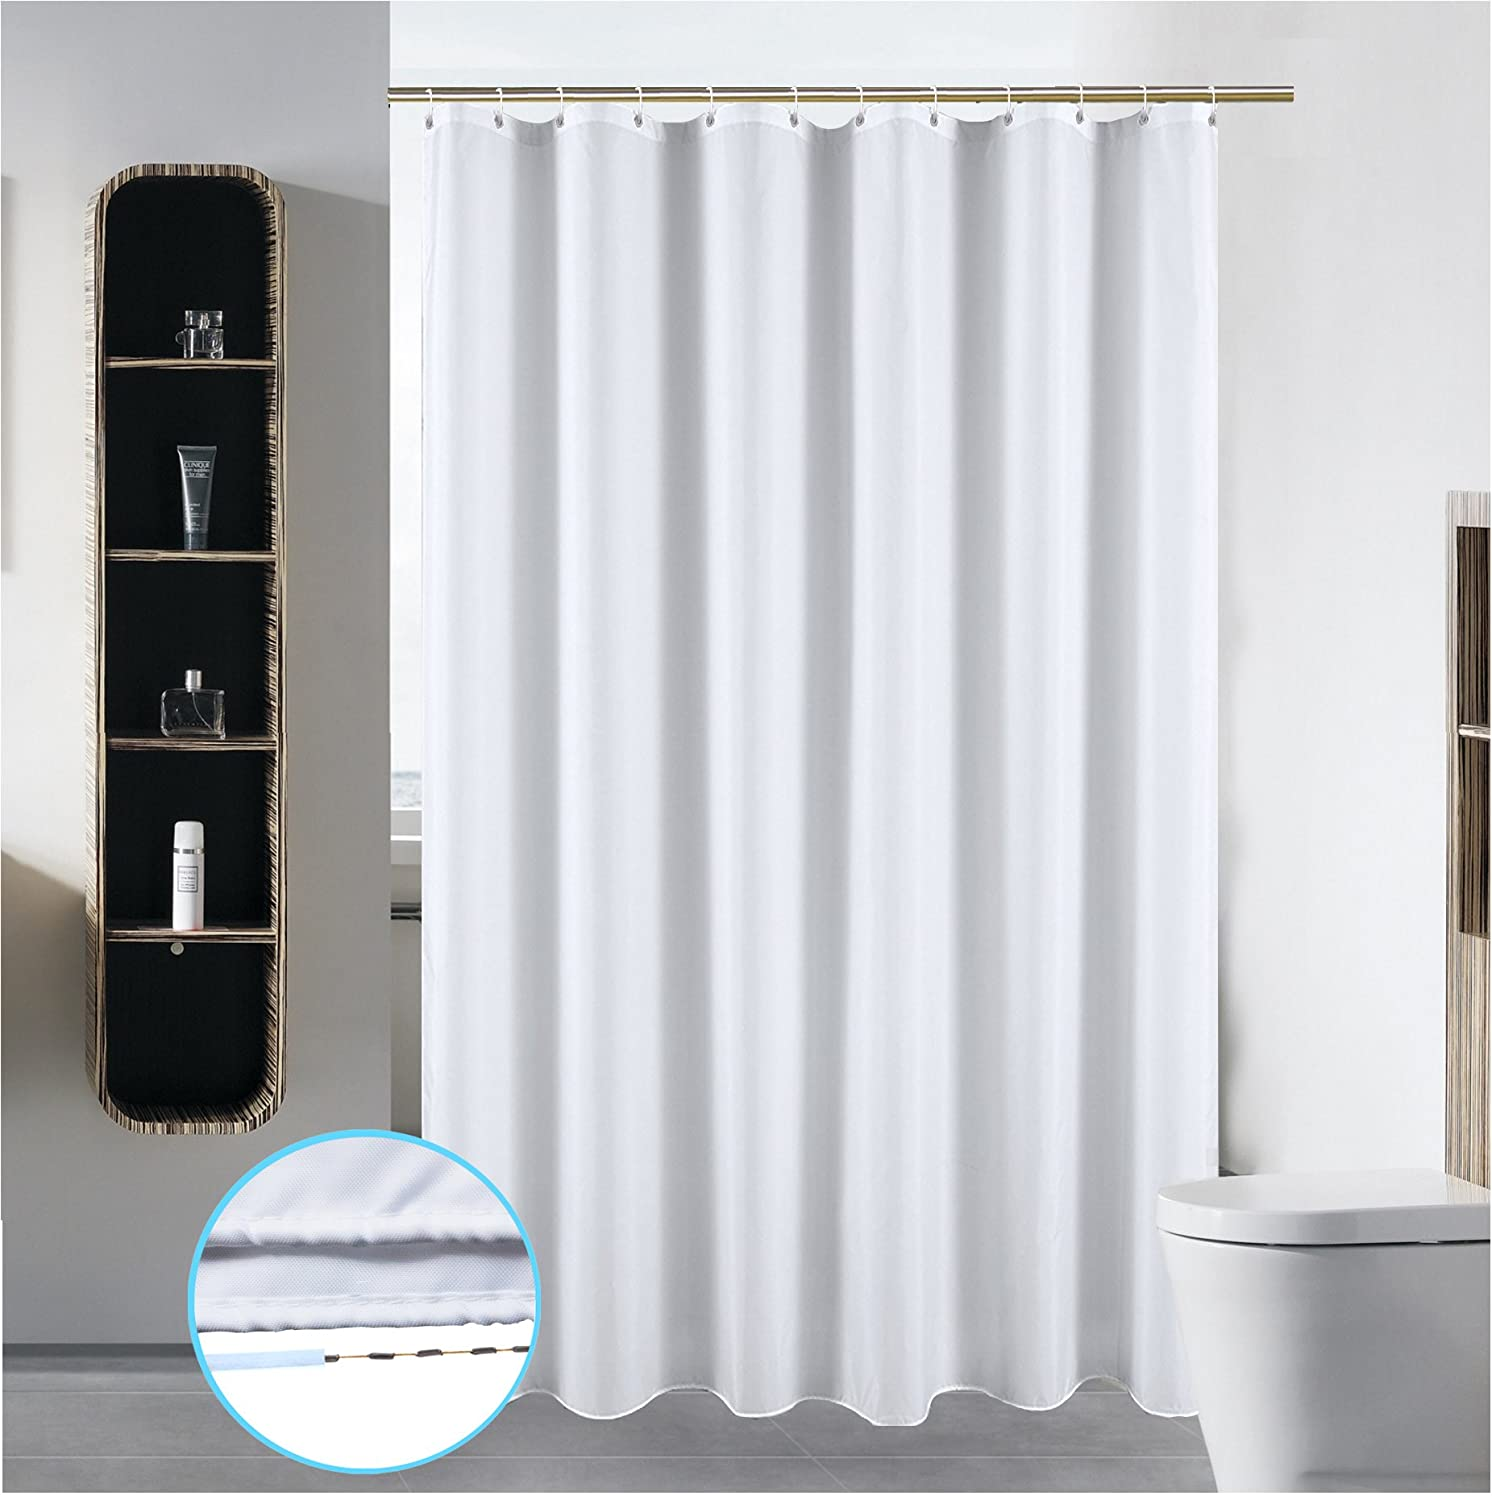 SLattye 40 X 72 Washable Fabric Shower Curtain Liner Wider Than 36 Inches Bathroom Water Repellent Mildew Resistant Polyester With Curved Plastic Hooks